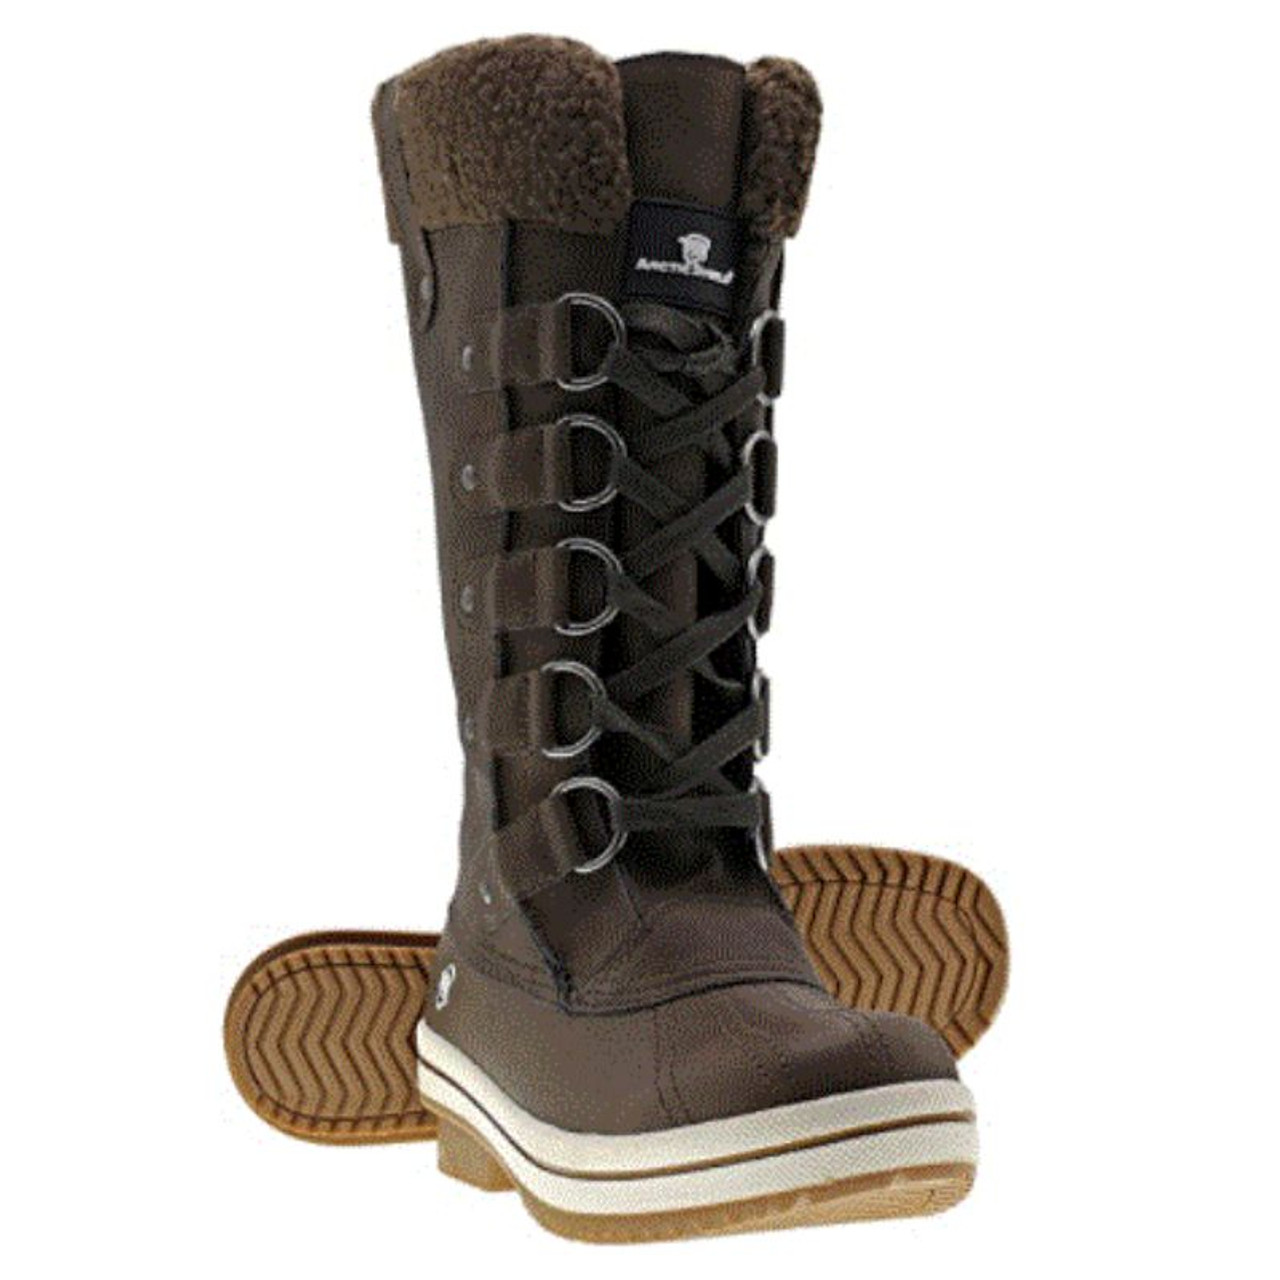 Arctic Shield Women's Warm Comfortable Insulated Outdoor Winter Snow Boots